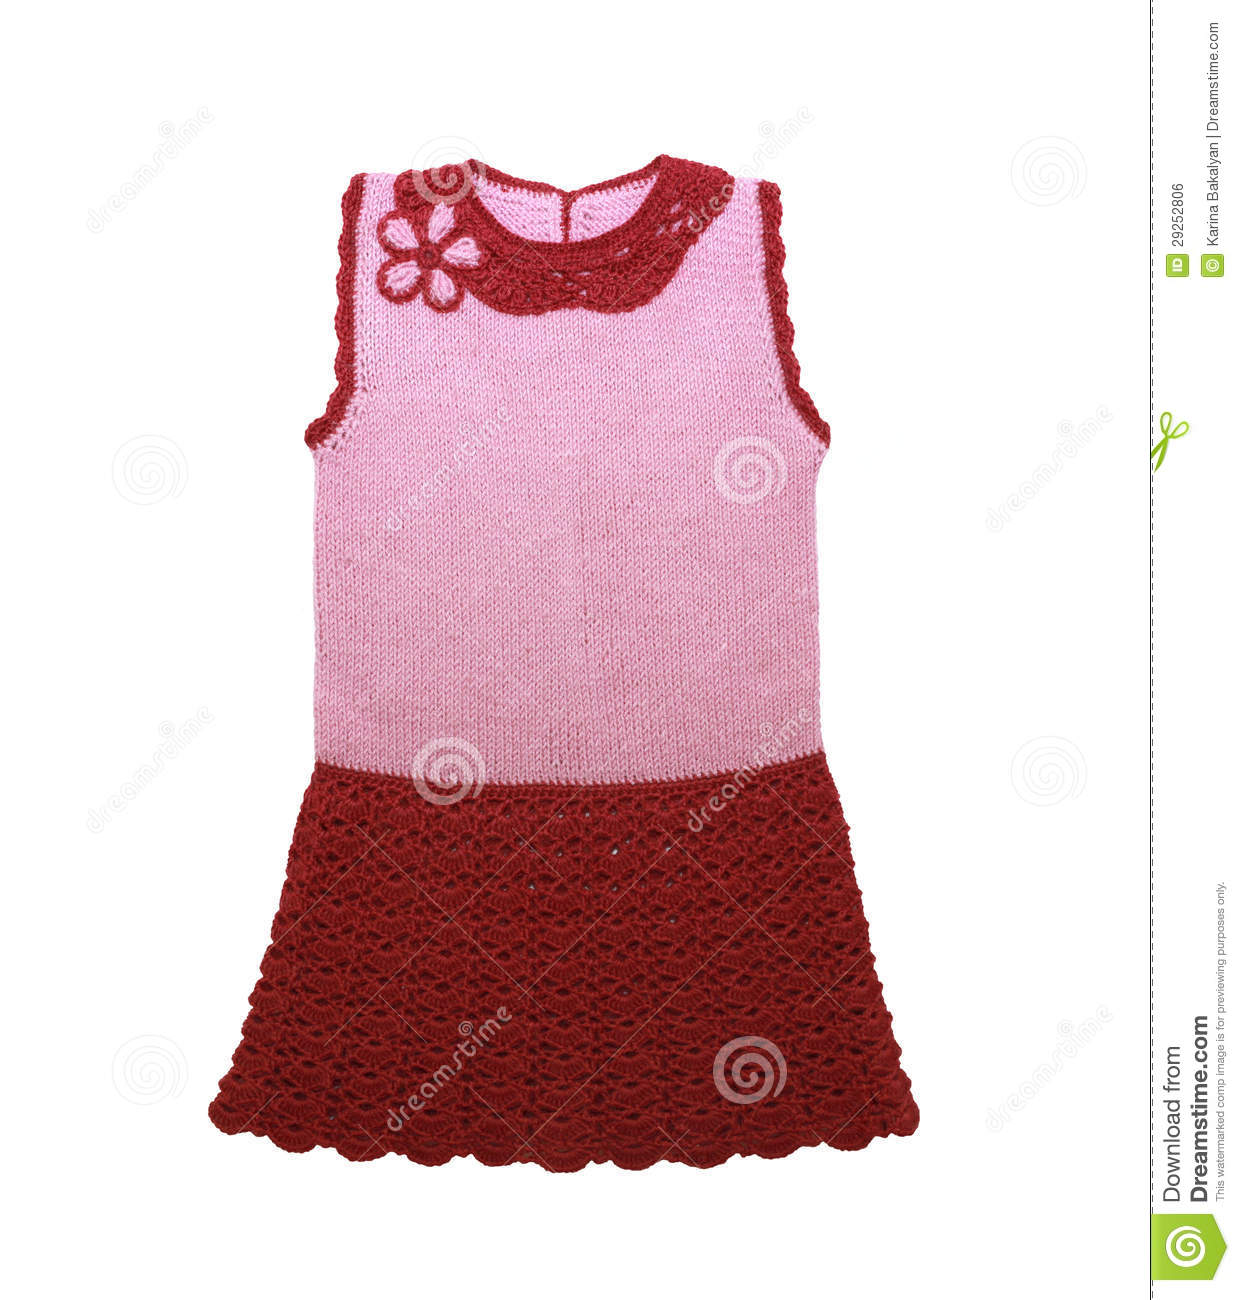 ab66f4651888 Knitted Baby Dress Isolated On A White Background Stock Photo ...